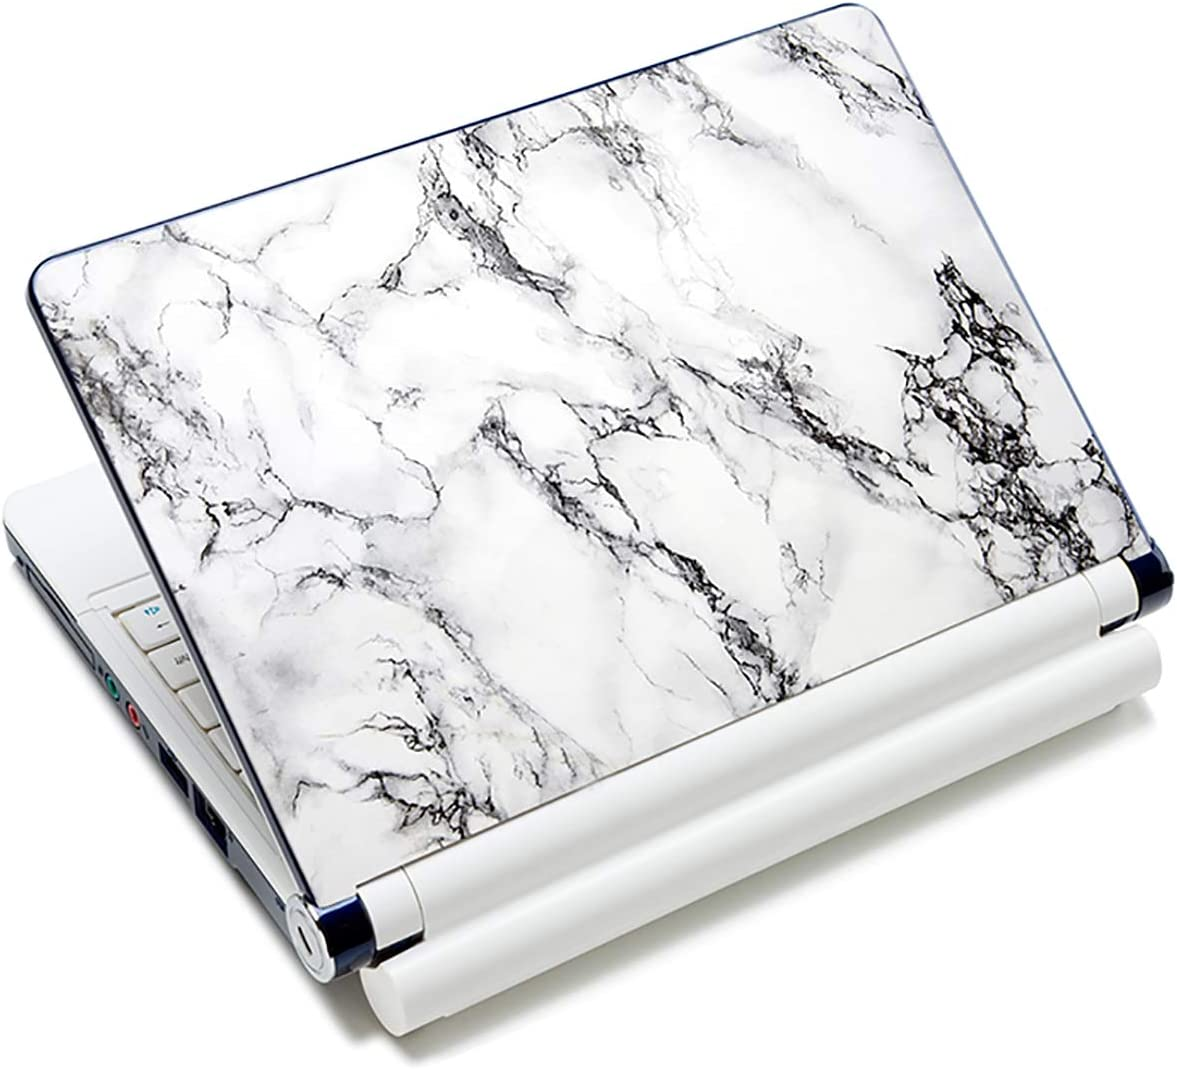 """Laptop Skin Vinyl Sticker Decal, 12"""" 13"""" 13.3"""" 14"""" 15"""" 15.4"""" 15.6 inch Laptop Skin Sticker Cover Art Decal Protector Fits HP Dell Lenovo Compaq Apple Asus Acer (White Marble)"""